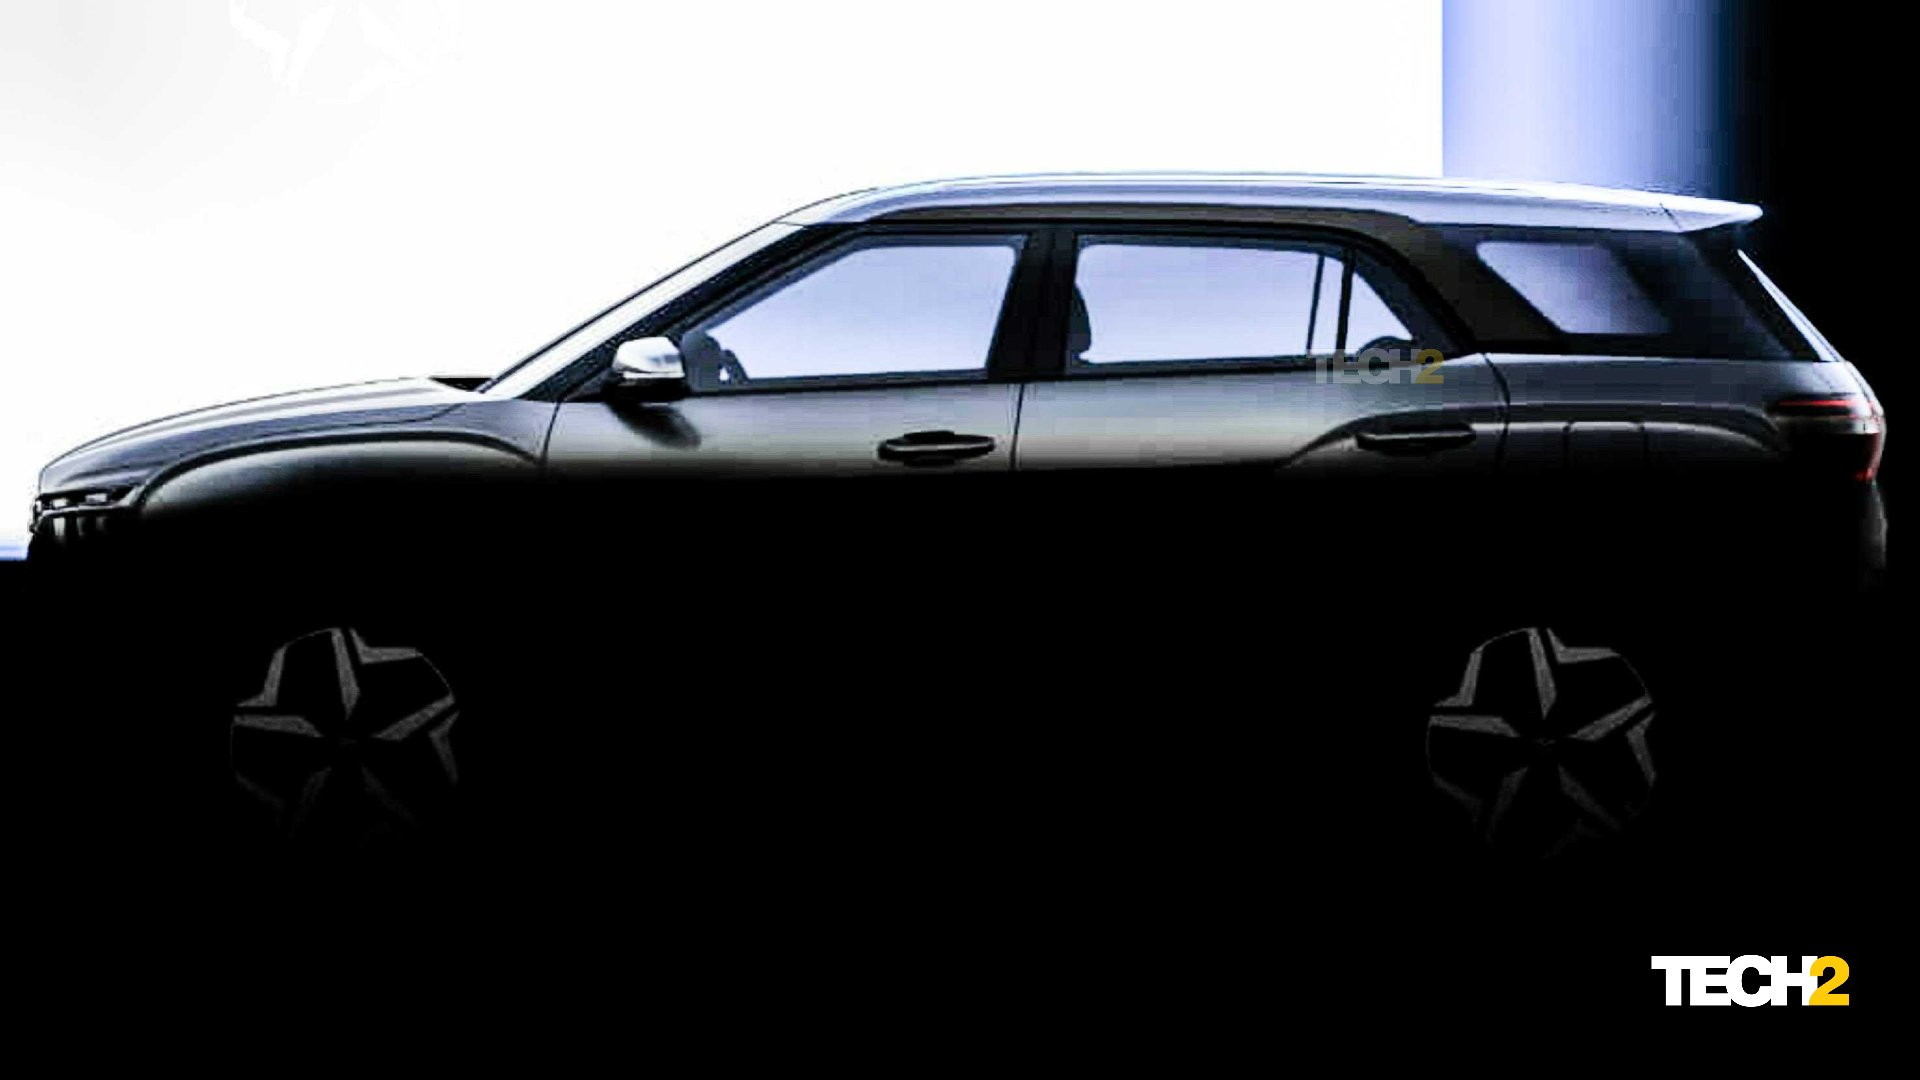 The Hyundai Alcazar's pillars have been blacked out to provide a 'floating roof' effect. Image: Hyundai